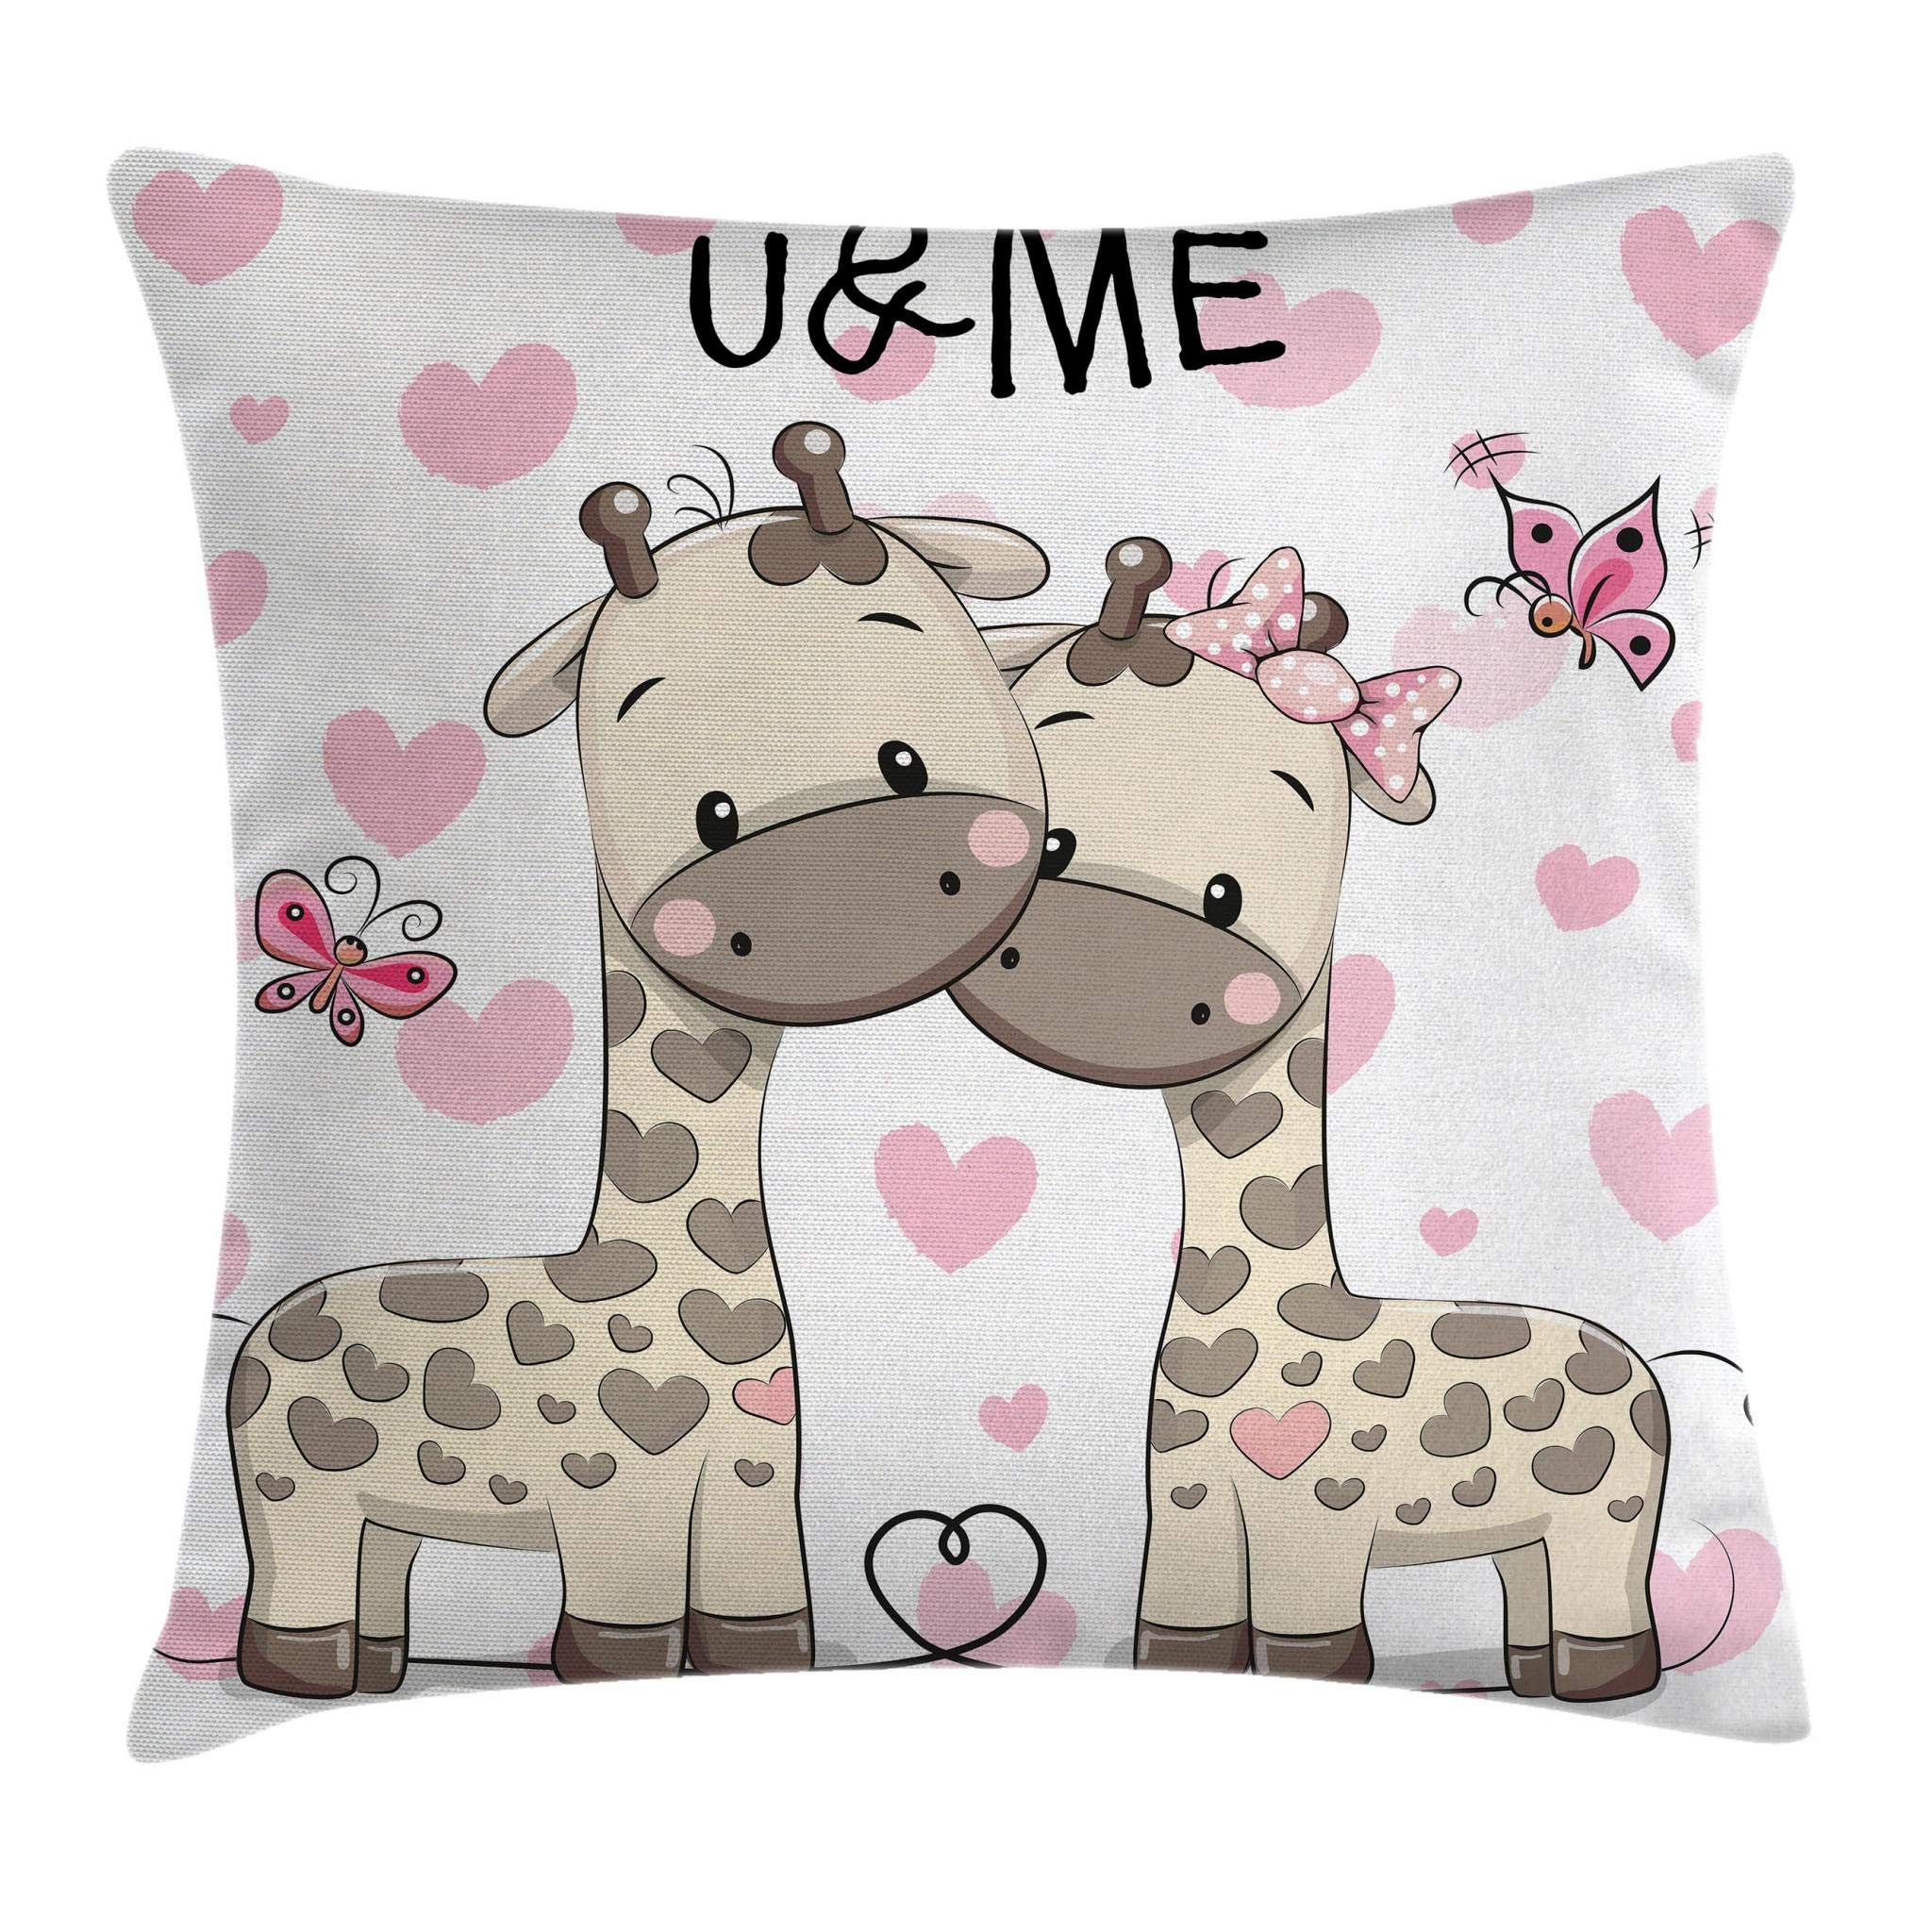 Ambesonne Kids Throw Pillow Cushion Cover, Cute Giraffes in Pure Valentine's Love with Butterflies and Hearts Bows Art, Decorative Square Accent Pillow Case, 36 X 16 Inches, Pink White and Grey